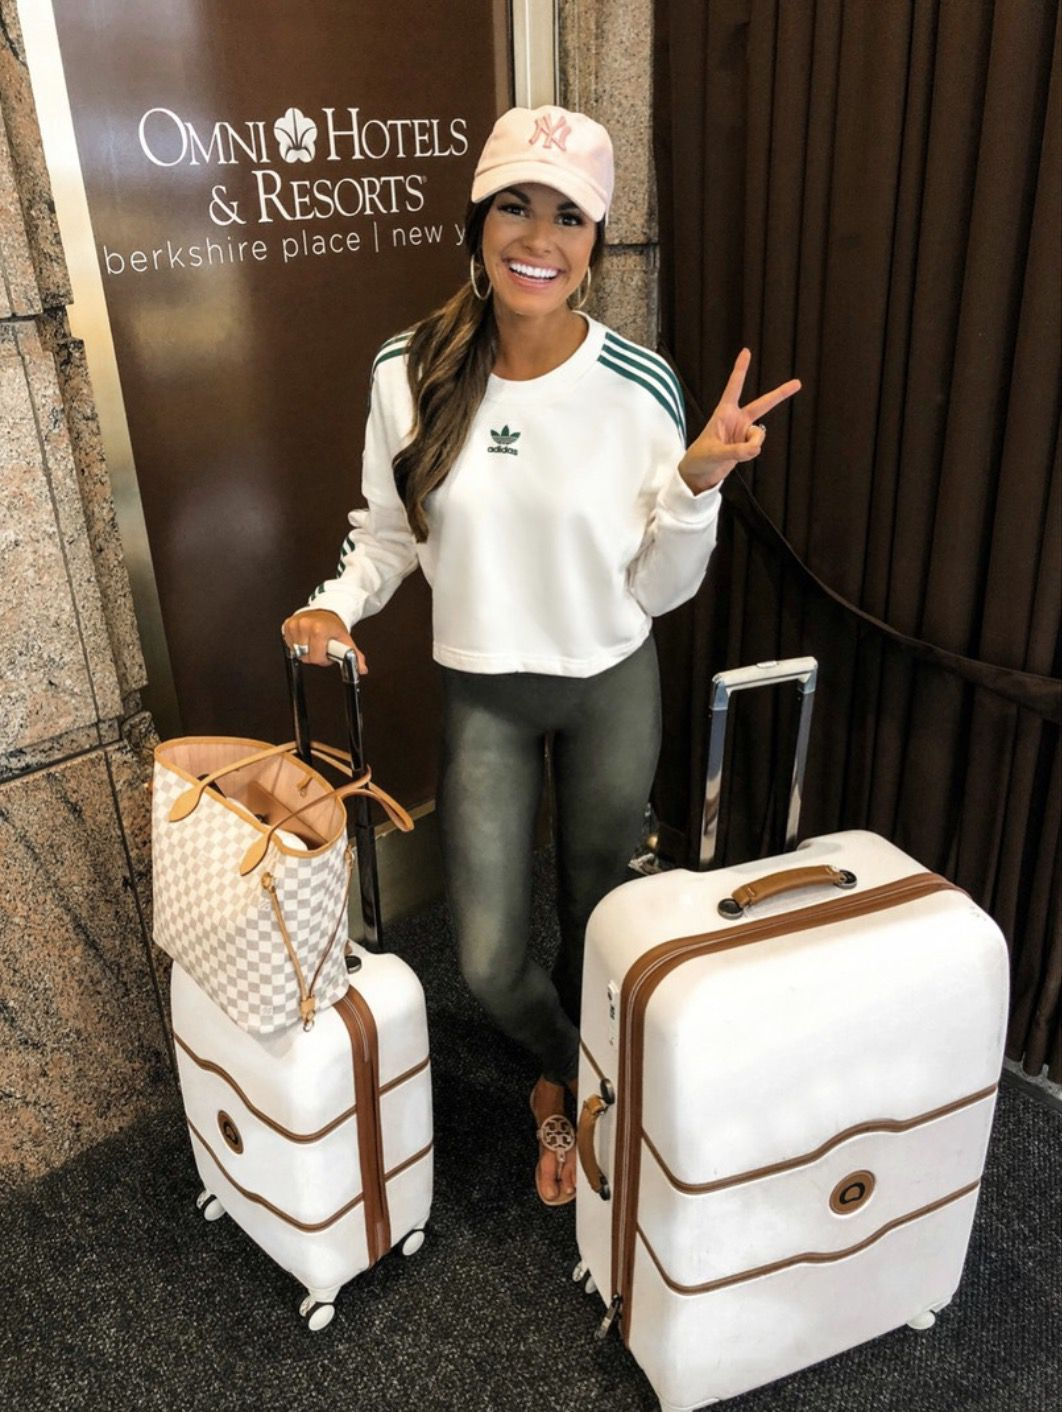 11+ Surprisingly Cute Sporty Outfits To Try: All athleisure lovers ahoy! Check out these sporty chic outfits, casual outfits and stylish gym outfits to get inspired for the new season. | Adidas shirt, pink Yankees cap, faux leather leggings, white luggage - perfect for airport outfits. ©MumuAndMacaroons #sportyoutfits #casualoutfits #athleisure #airportoutfits